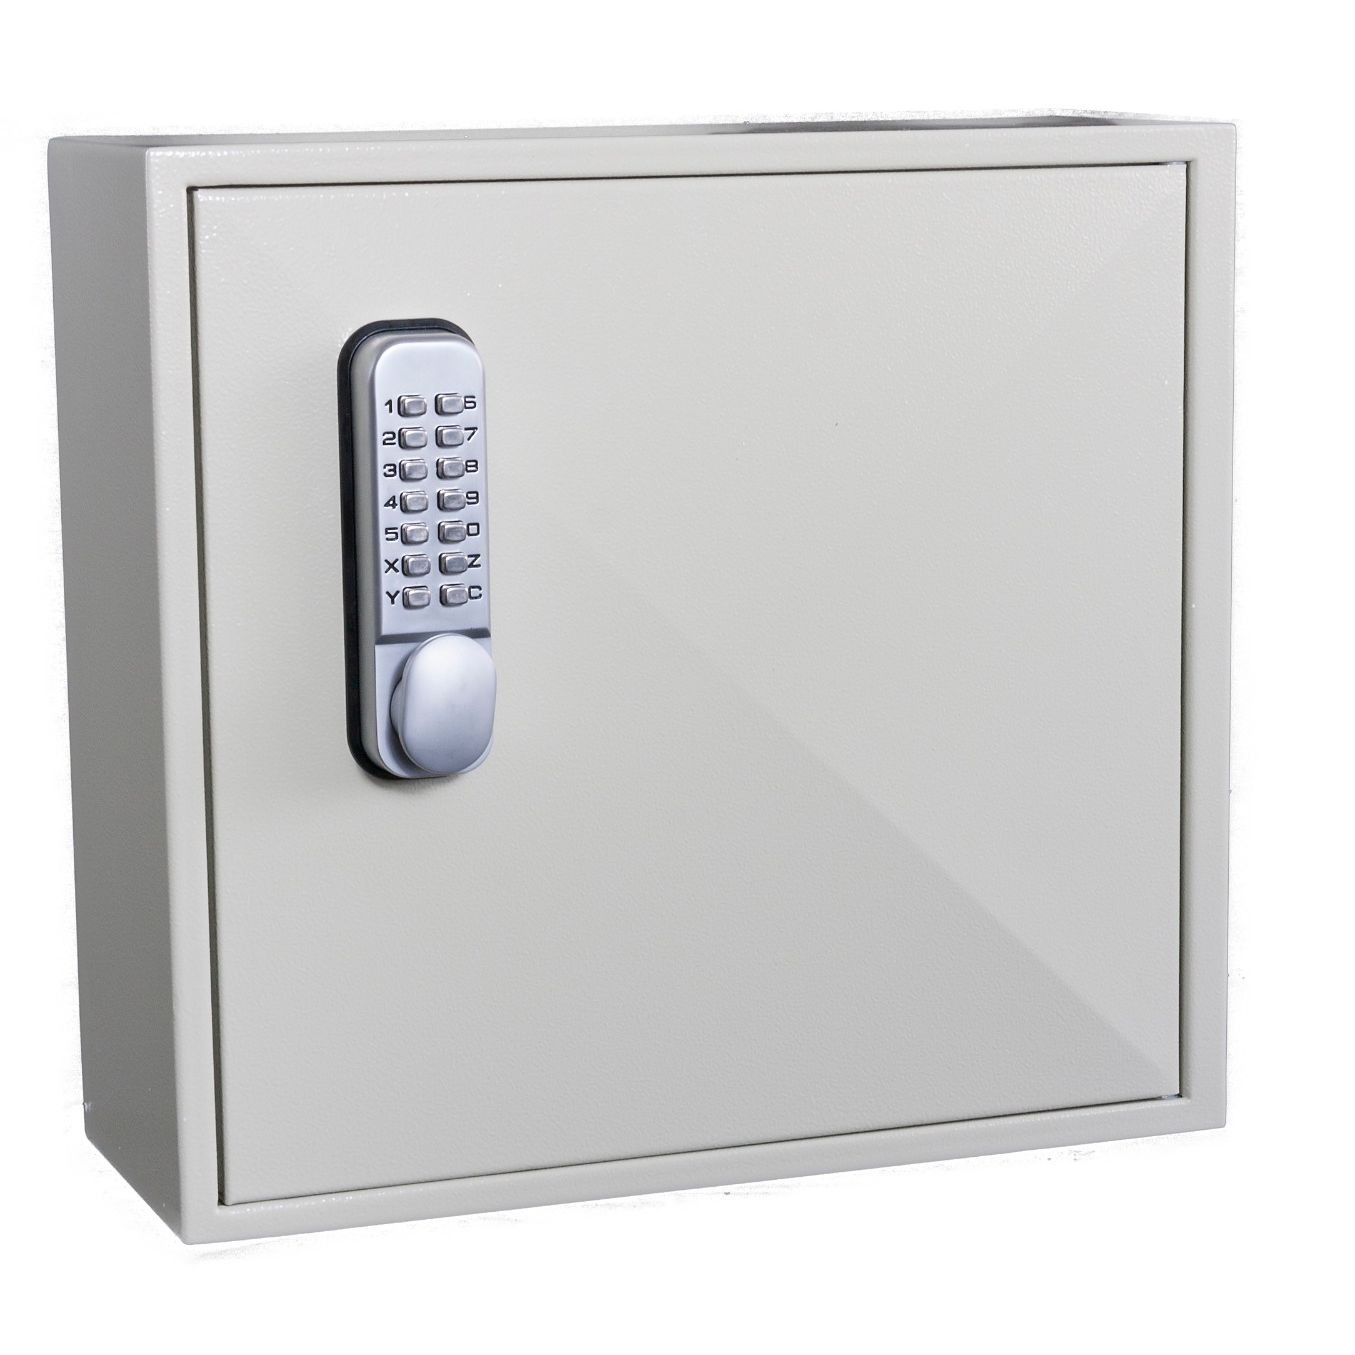 high_capacity_key_cabinets_with_mech_digital_lock_25_hook_closed.jpg